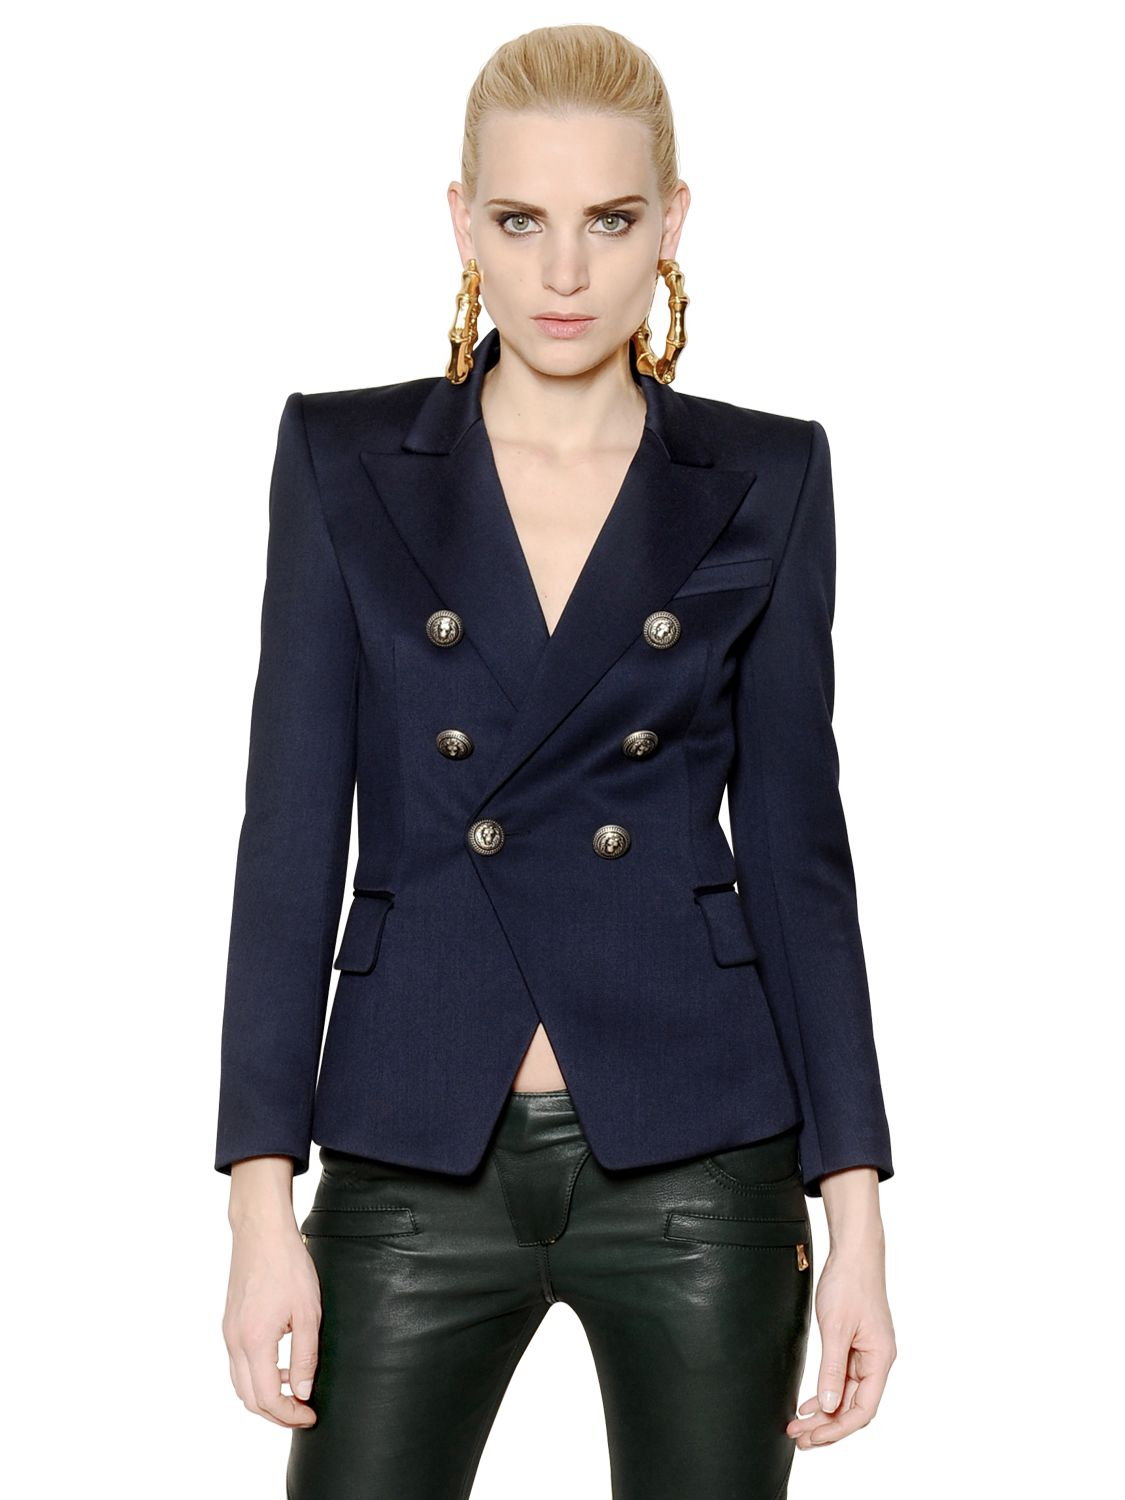 Balmain Tank Top | Balmain Double Breasted Blazer | Balmain Winter Jacket